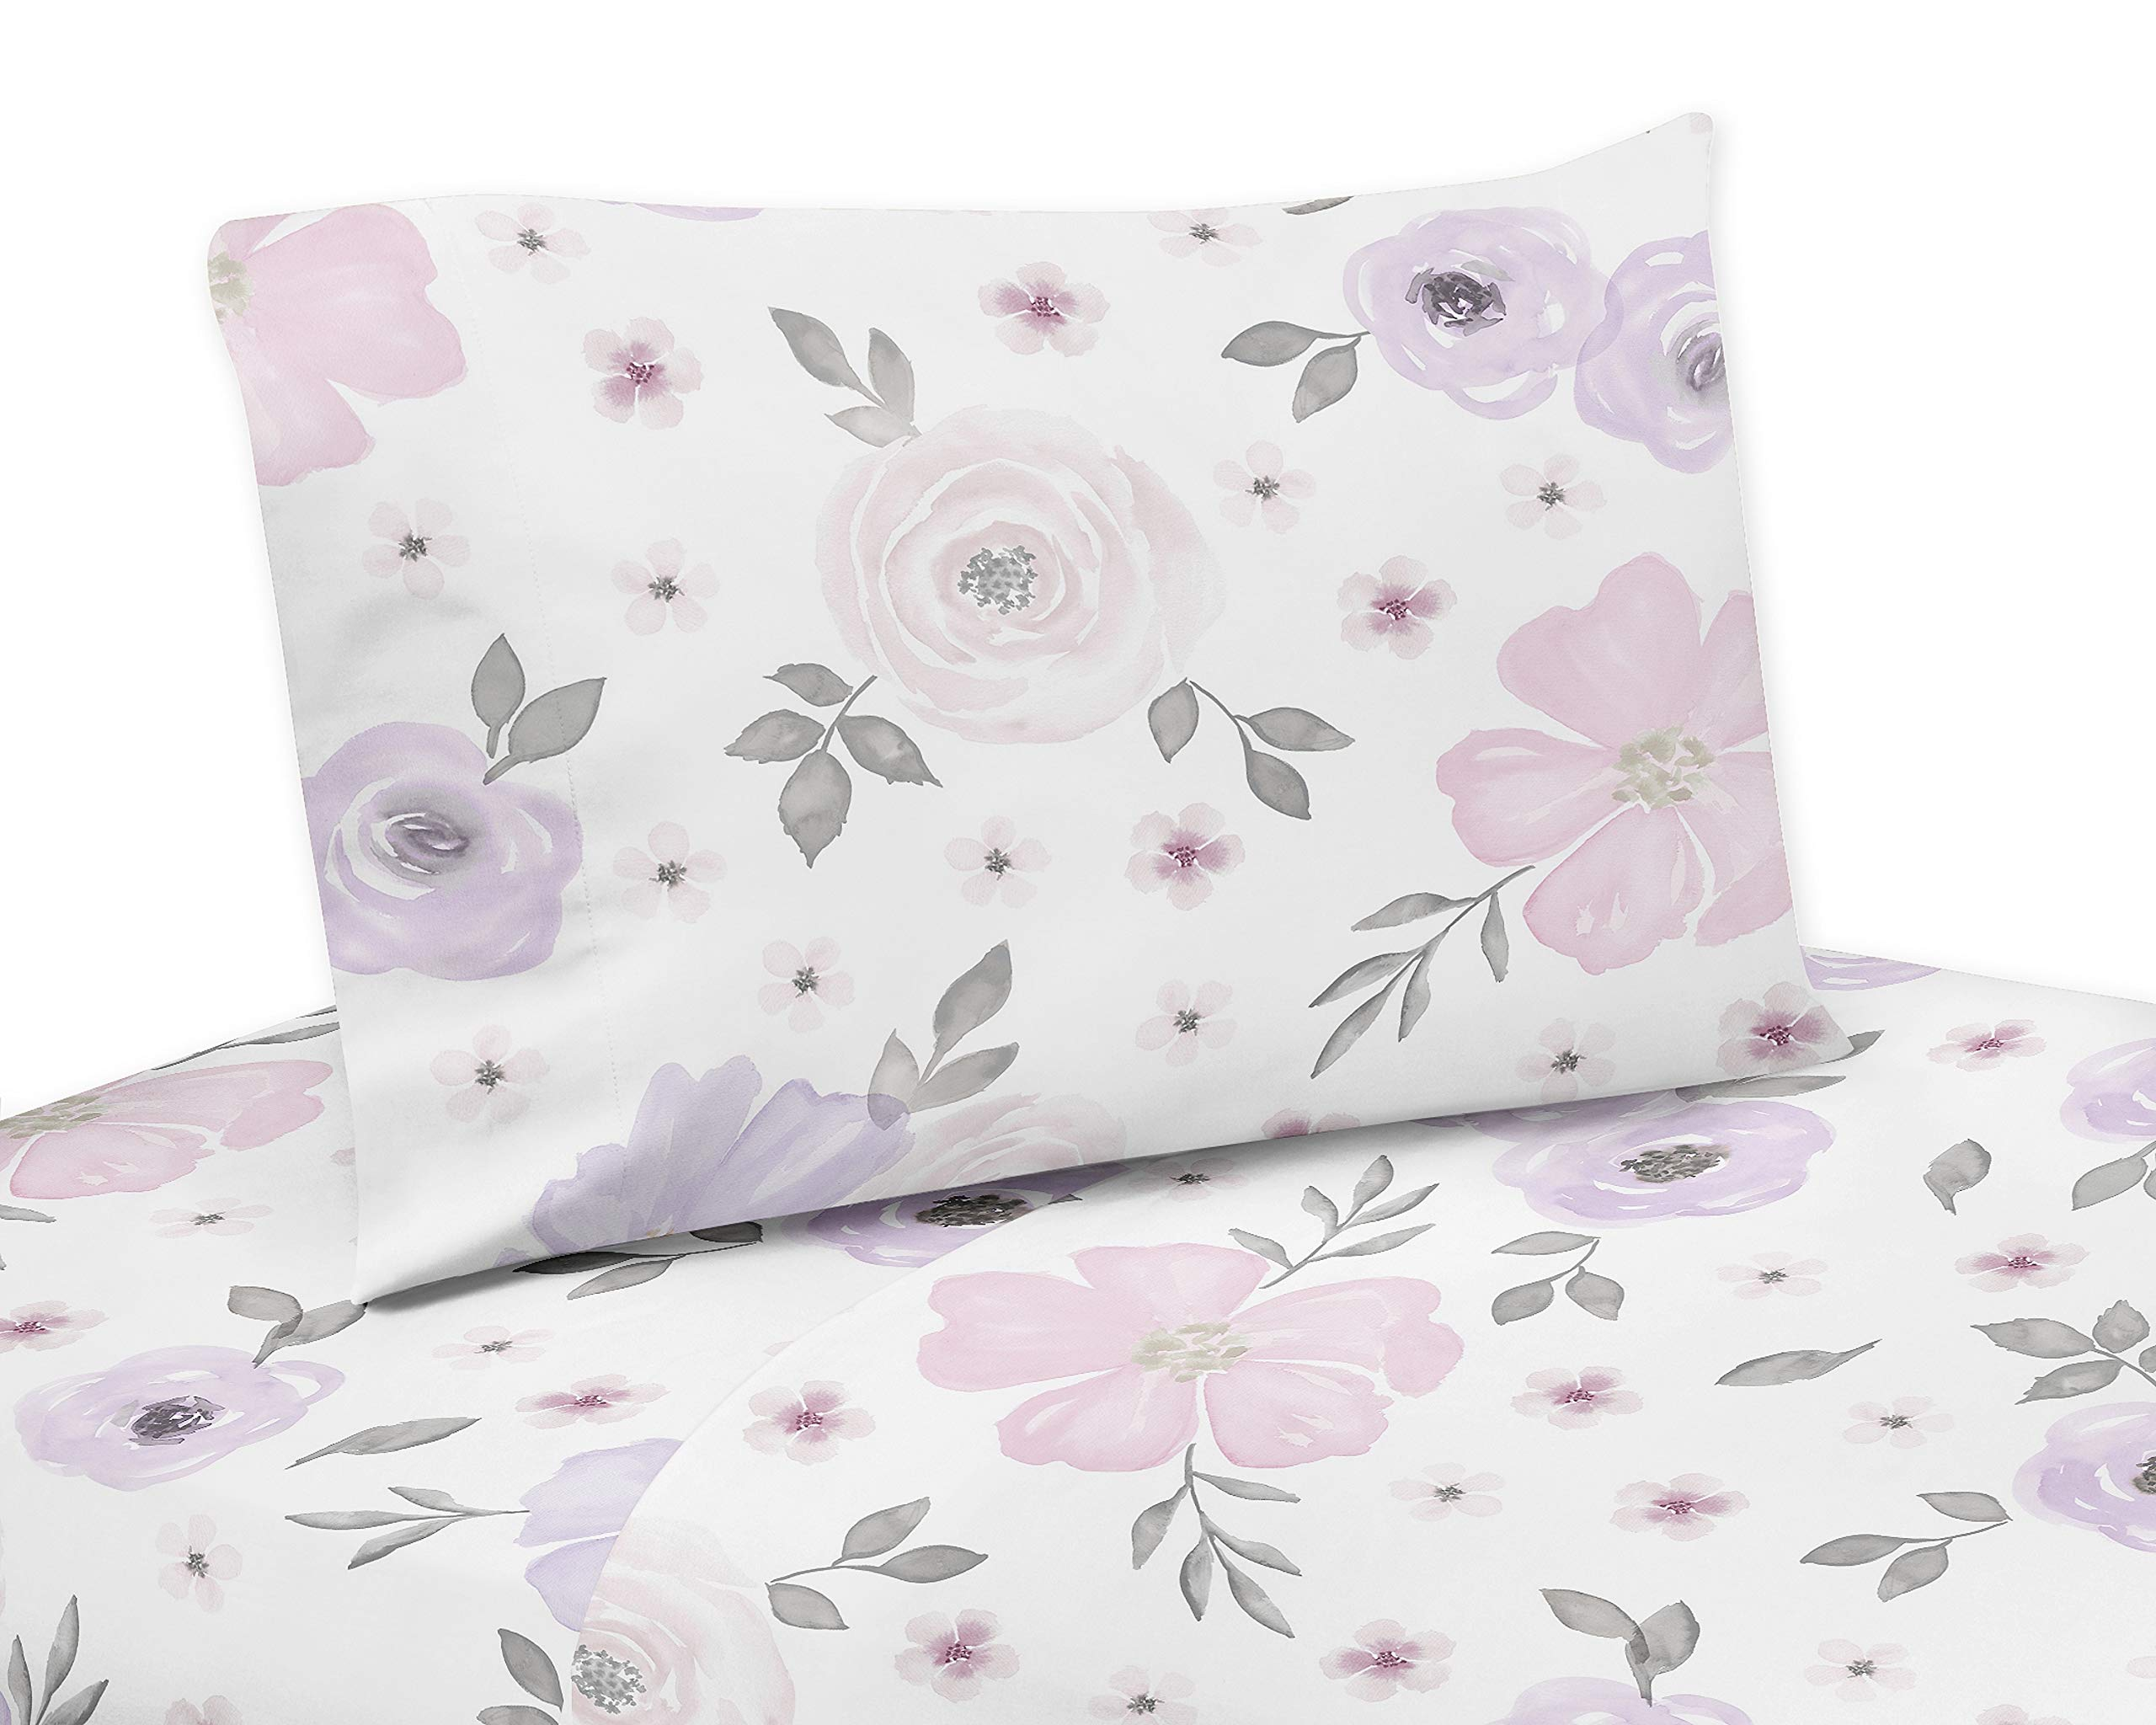 Sweet Jojo Designs Lavender Purple, Pink, Grey and White Queen Sheet Set for Watercolor Floral Collection - 4 piece set - Rose Flower